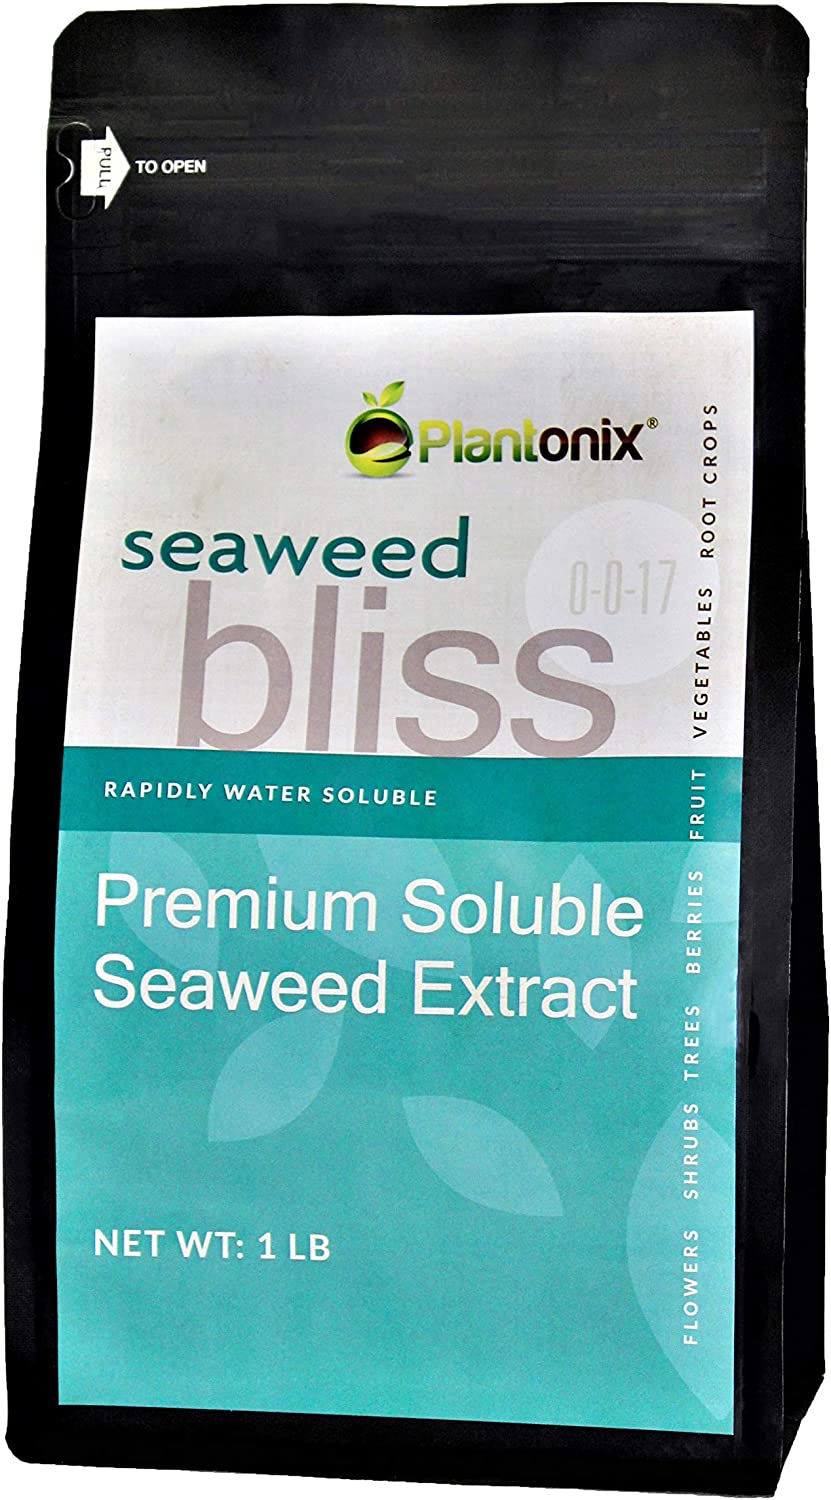 Fixed price for sale Seaweed Bliss Premium OFFicial mail order Soluble Extract lb 1 0-0-17